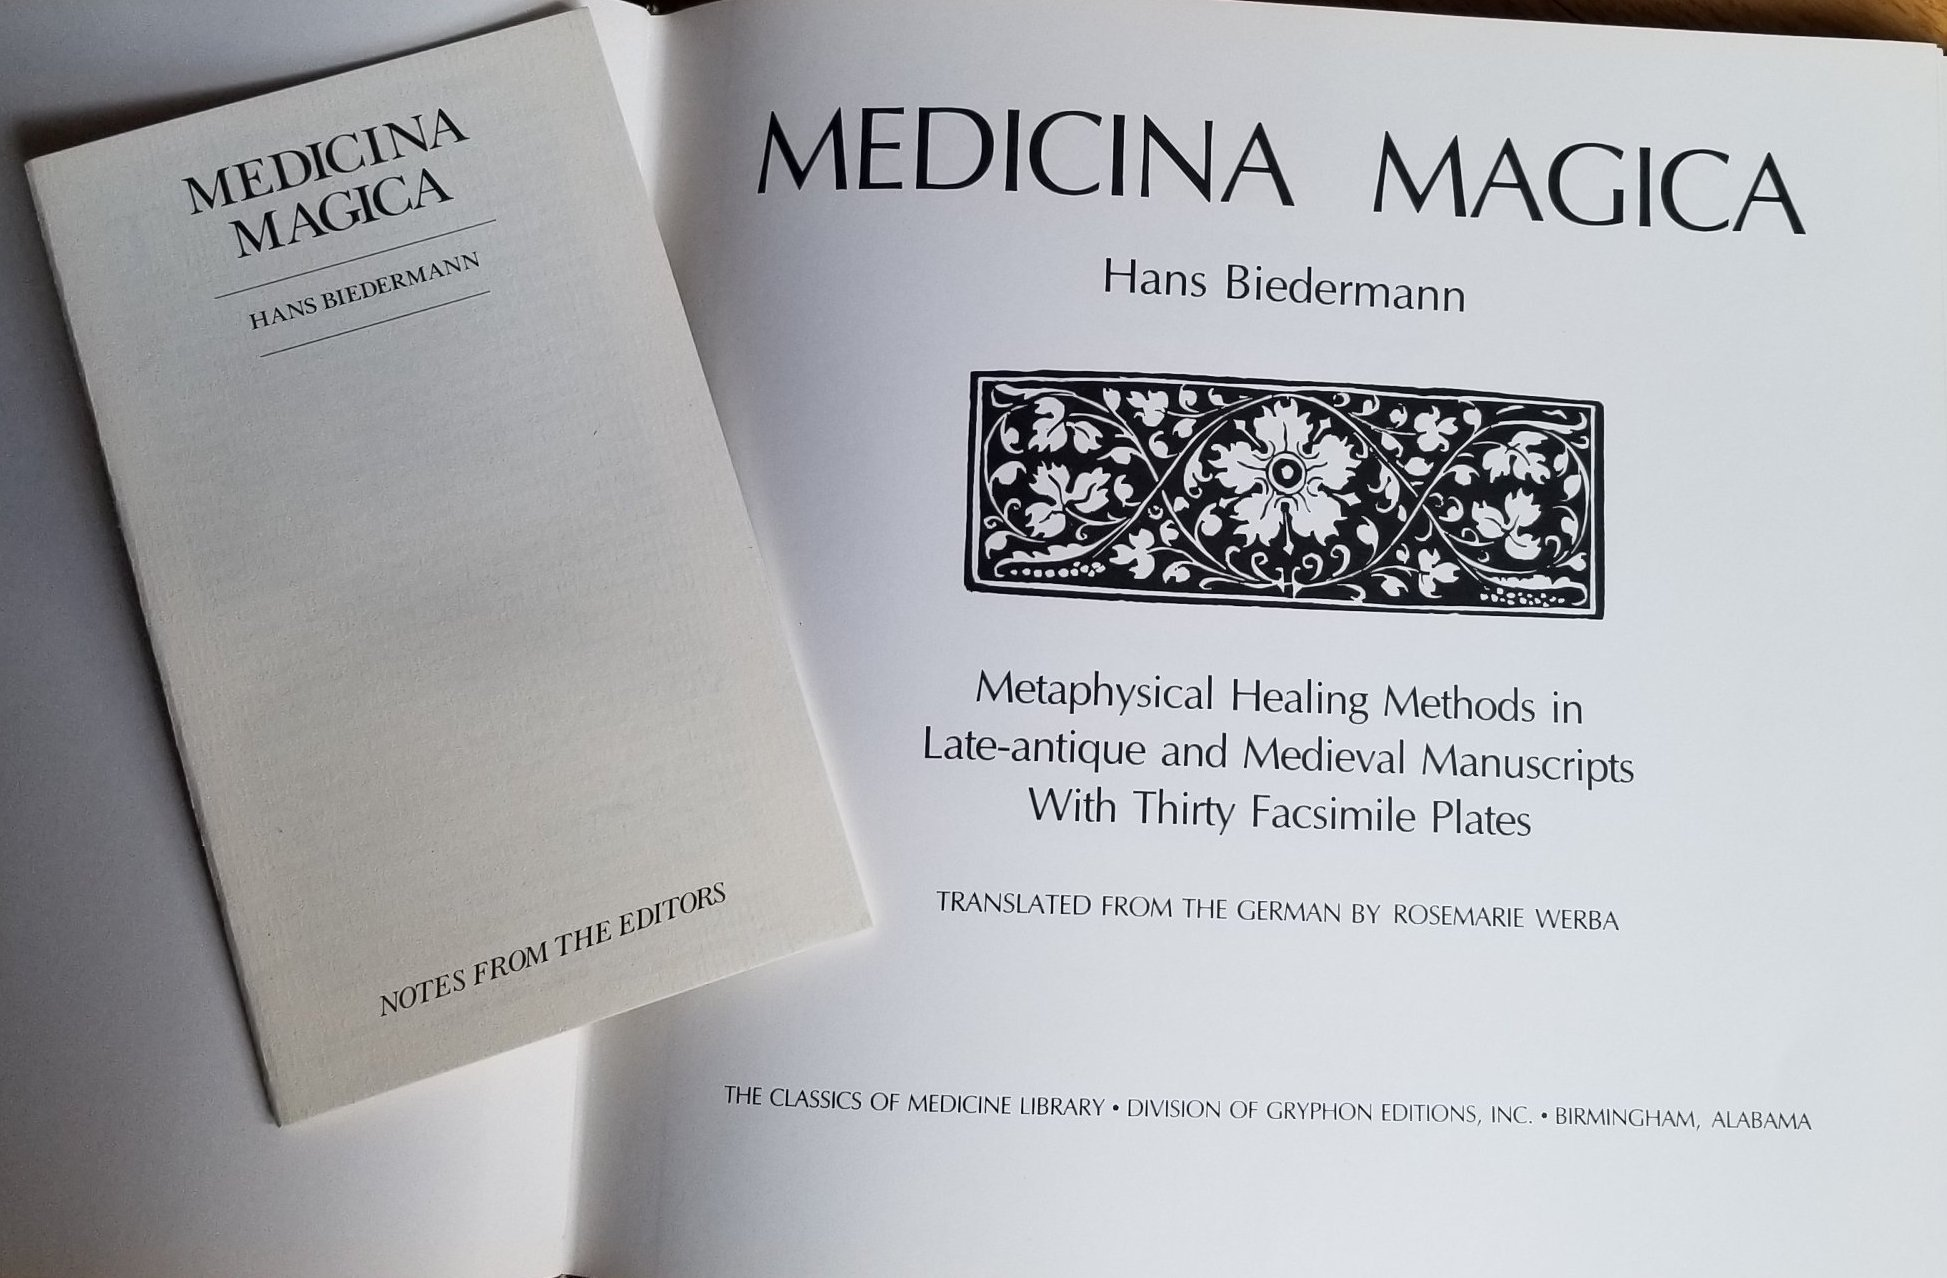 Image for Medicina Medica. Metaphysical Healing Methods in Late-antique and Medieval Manuscripts With Thirty Facsimile Plates. The Classics of Medicine Library.. With Booklet of Notes from the Editors included.